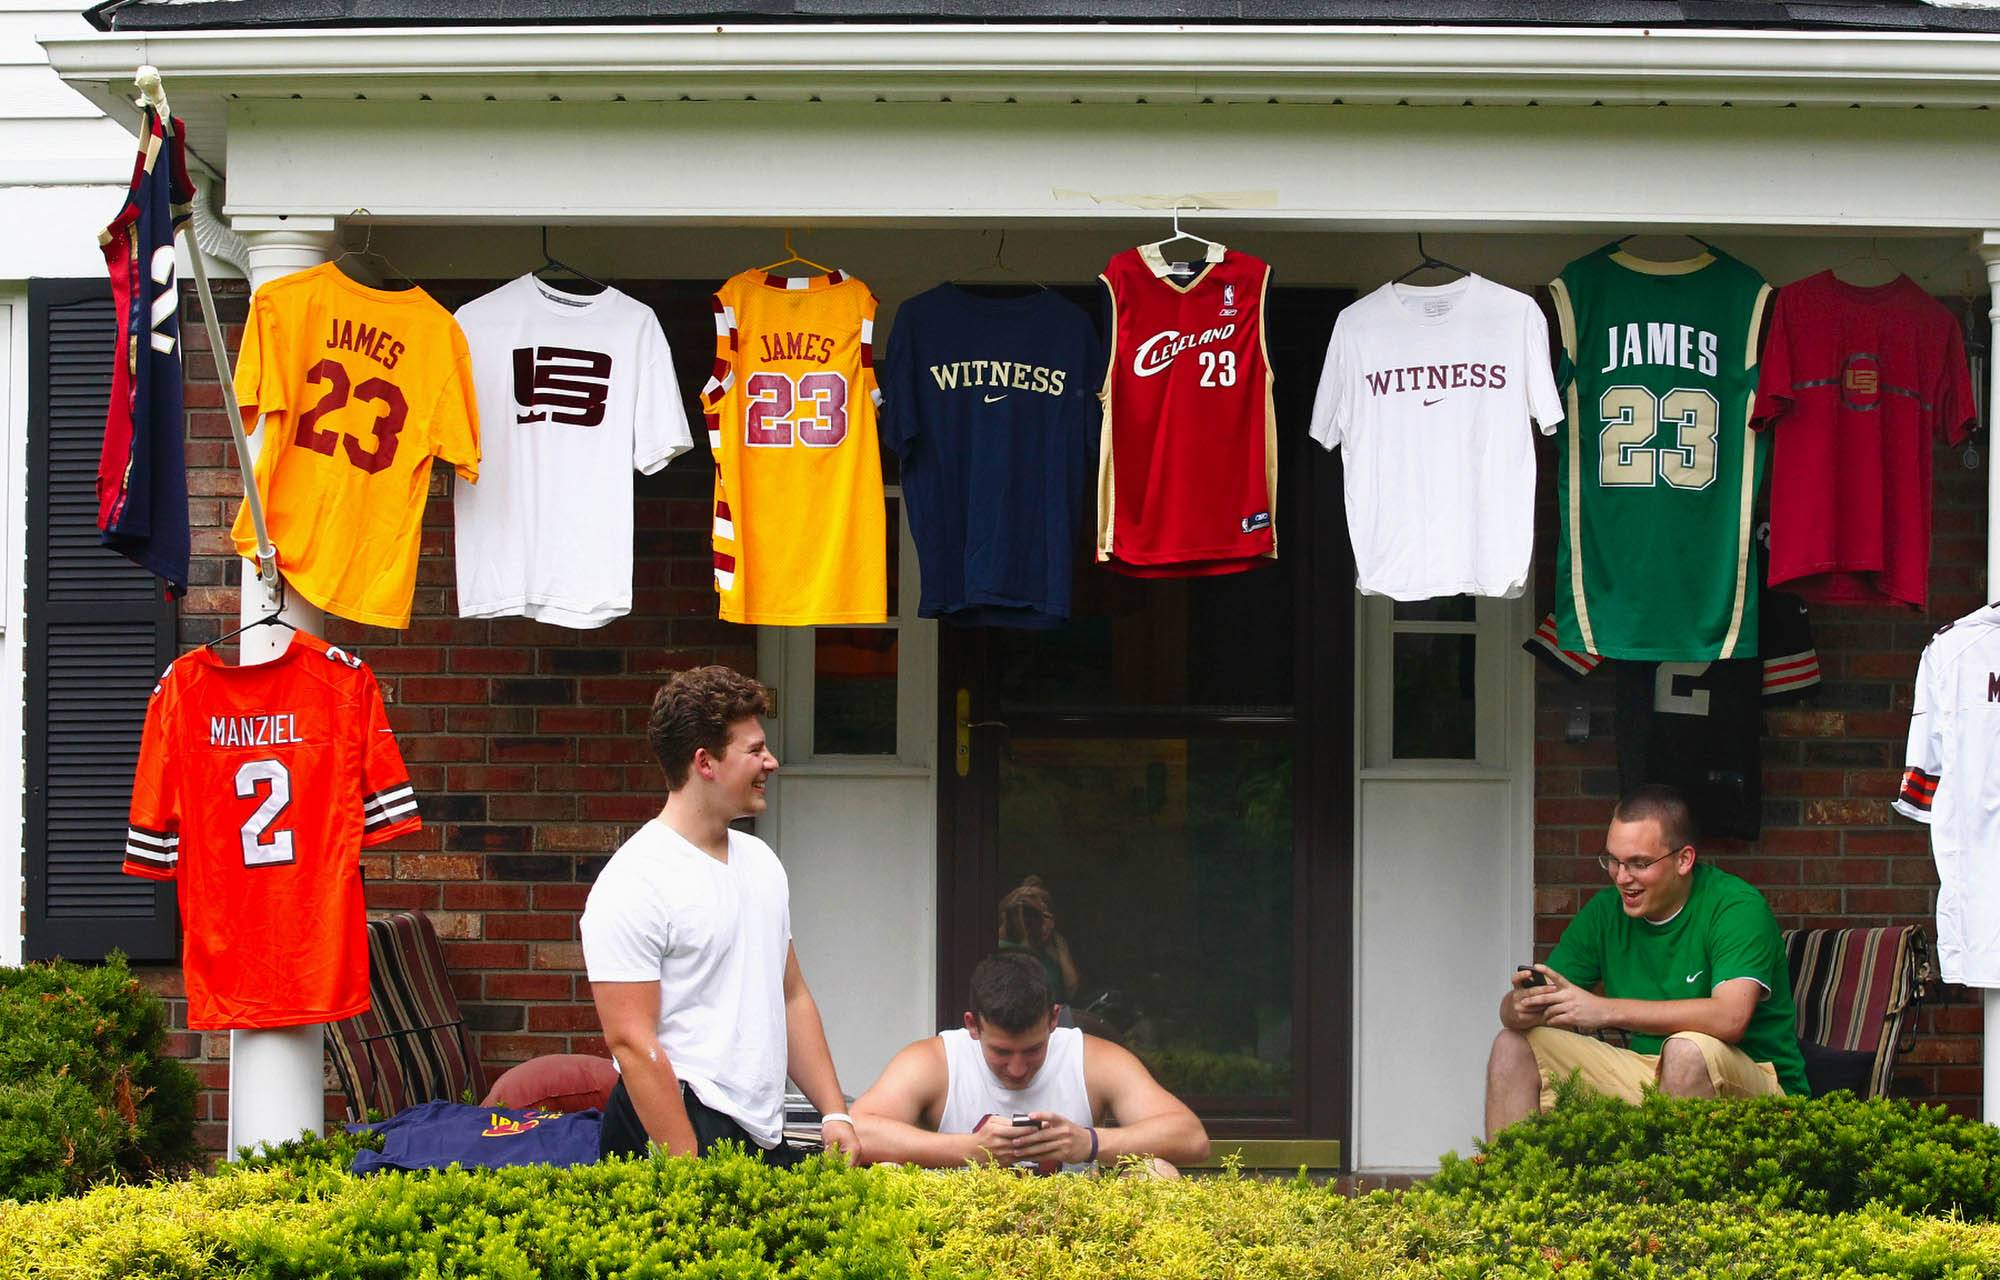 Joe D'Amico, left, his brother Billy D'Amico, center, and their friend Josh Heckman, await the news of where LeBron James will play basketball next year under their LeBron James gear as they watch the fans and media gather in front of the home of LeBron James on Thursday, July 10, 2014 in Bath Township, Ohio. The D'Amicos are neighbors of James.